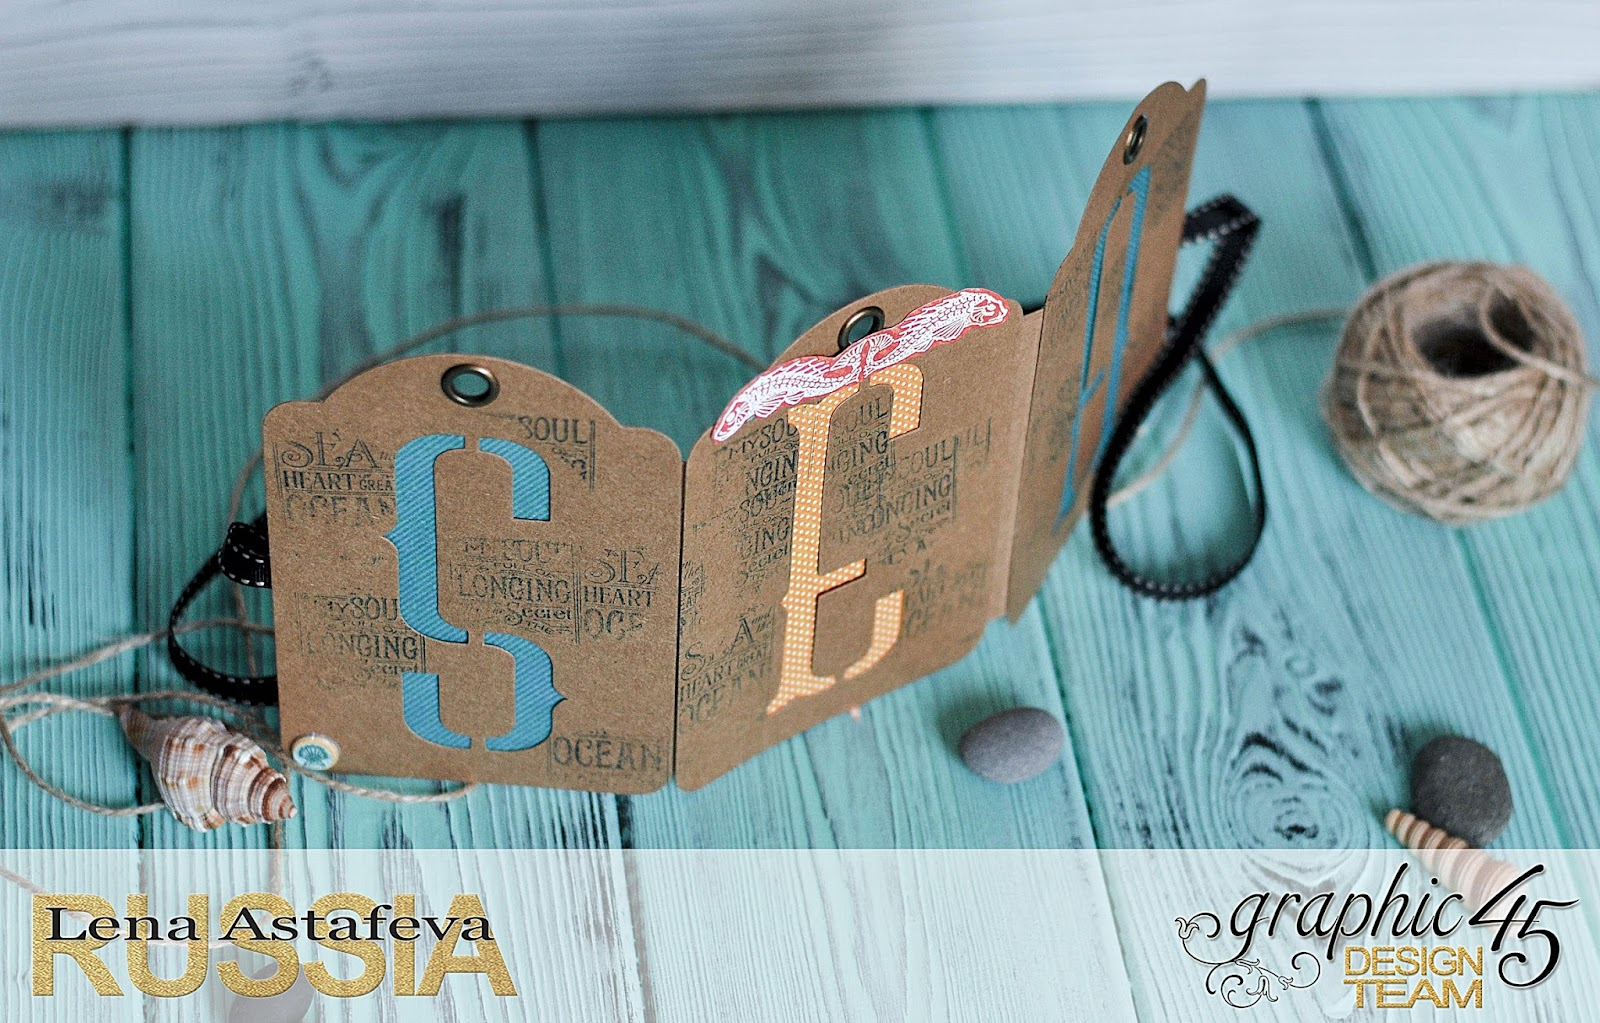 Tags-tutorial by Lena Astafeva-products by Graphic 45-58.jpg